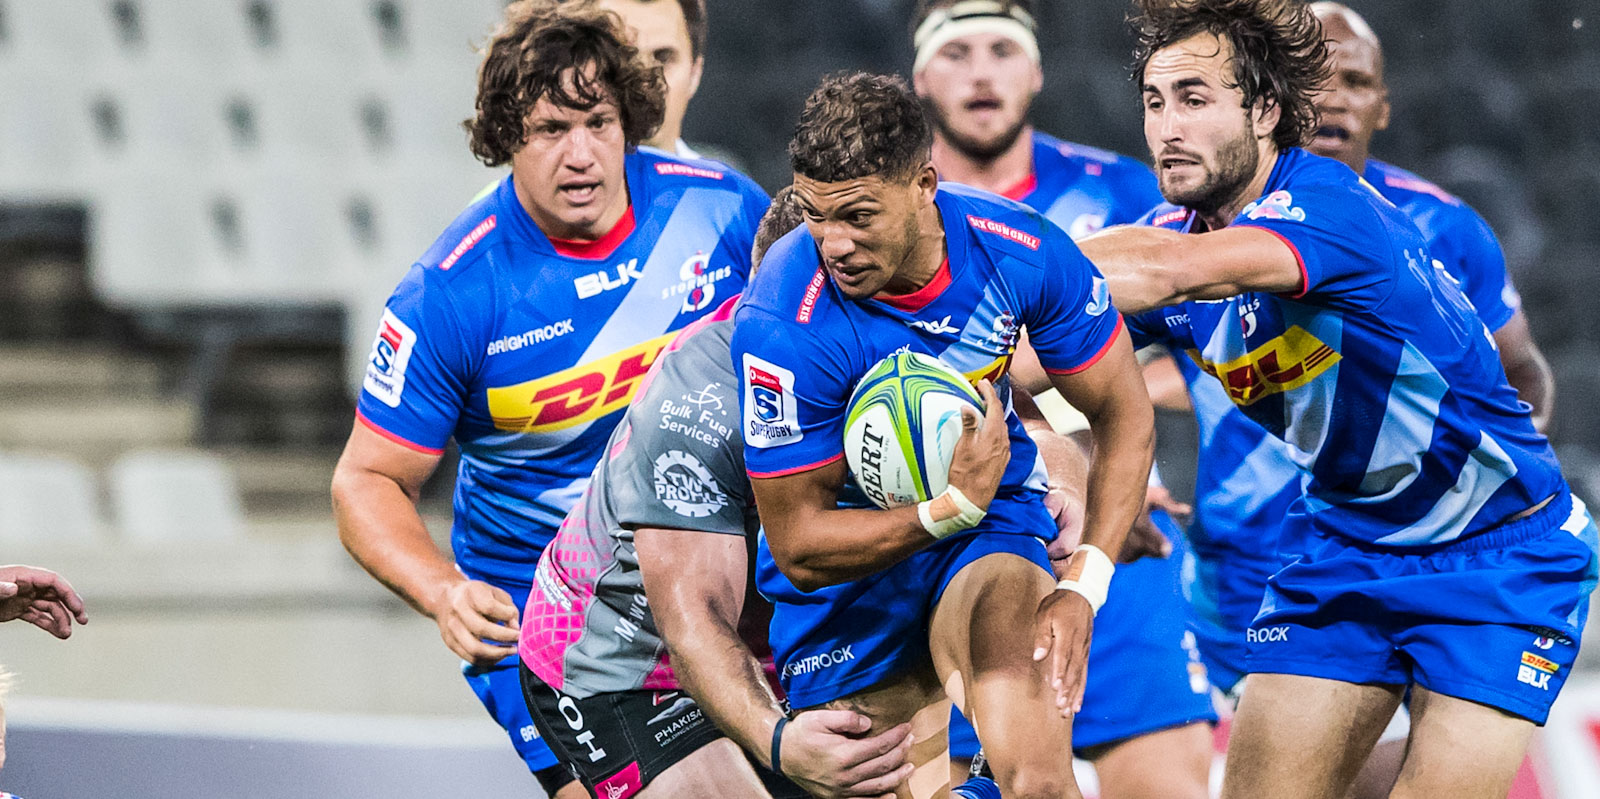 Edwill van der Merwe on the attack for the DHL Stormers.